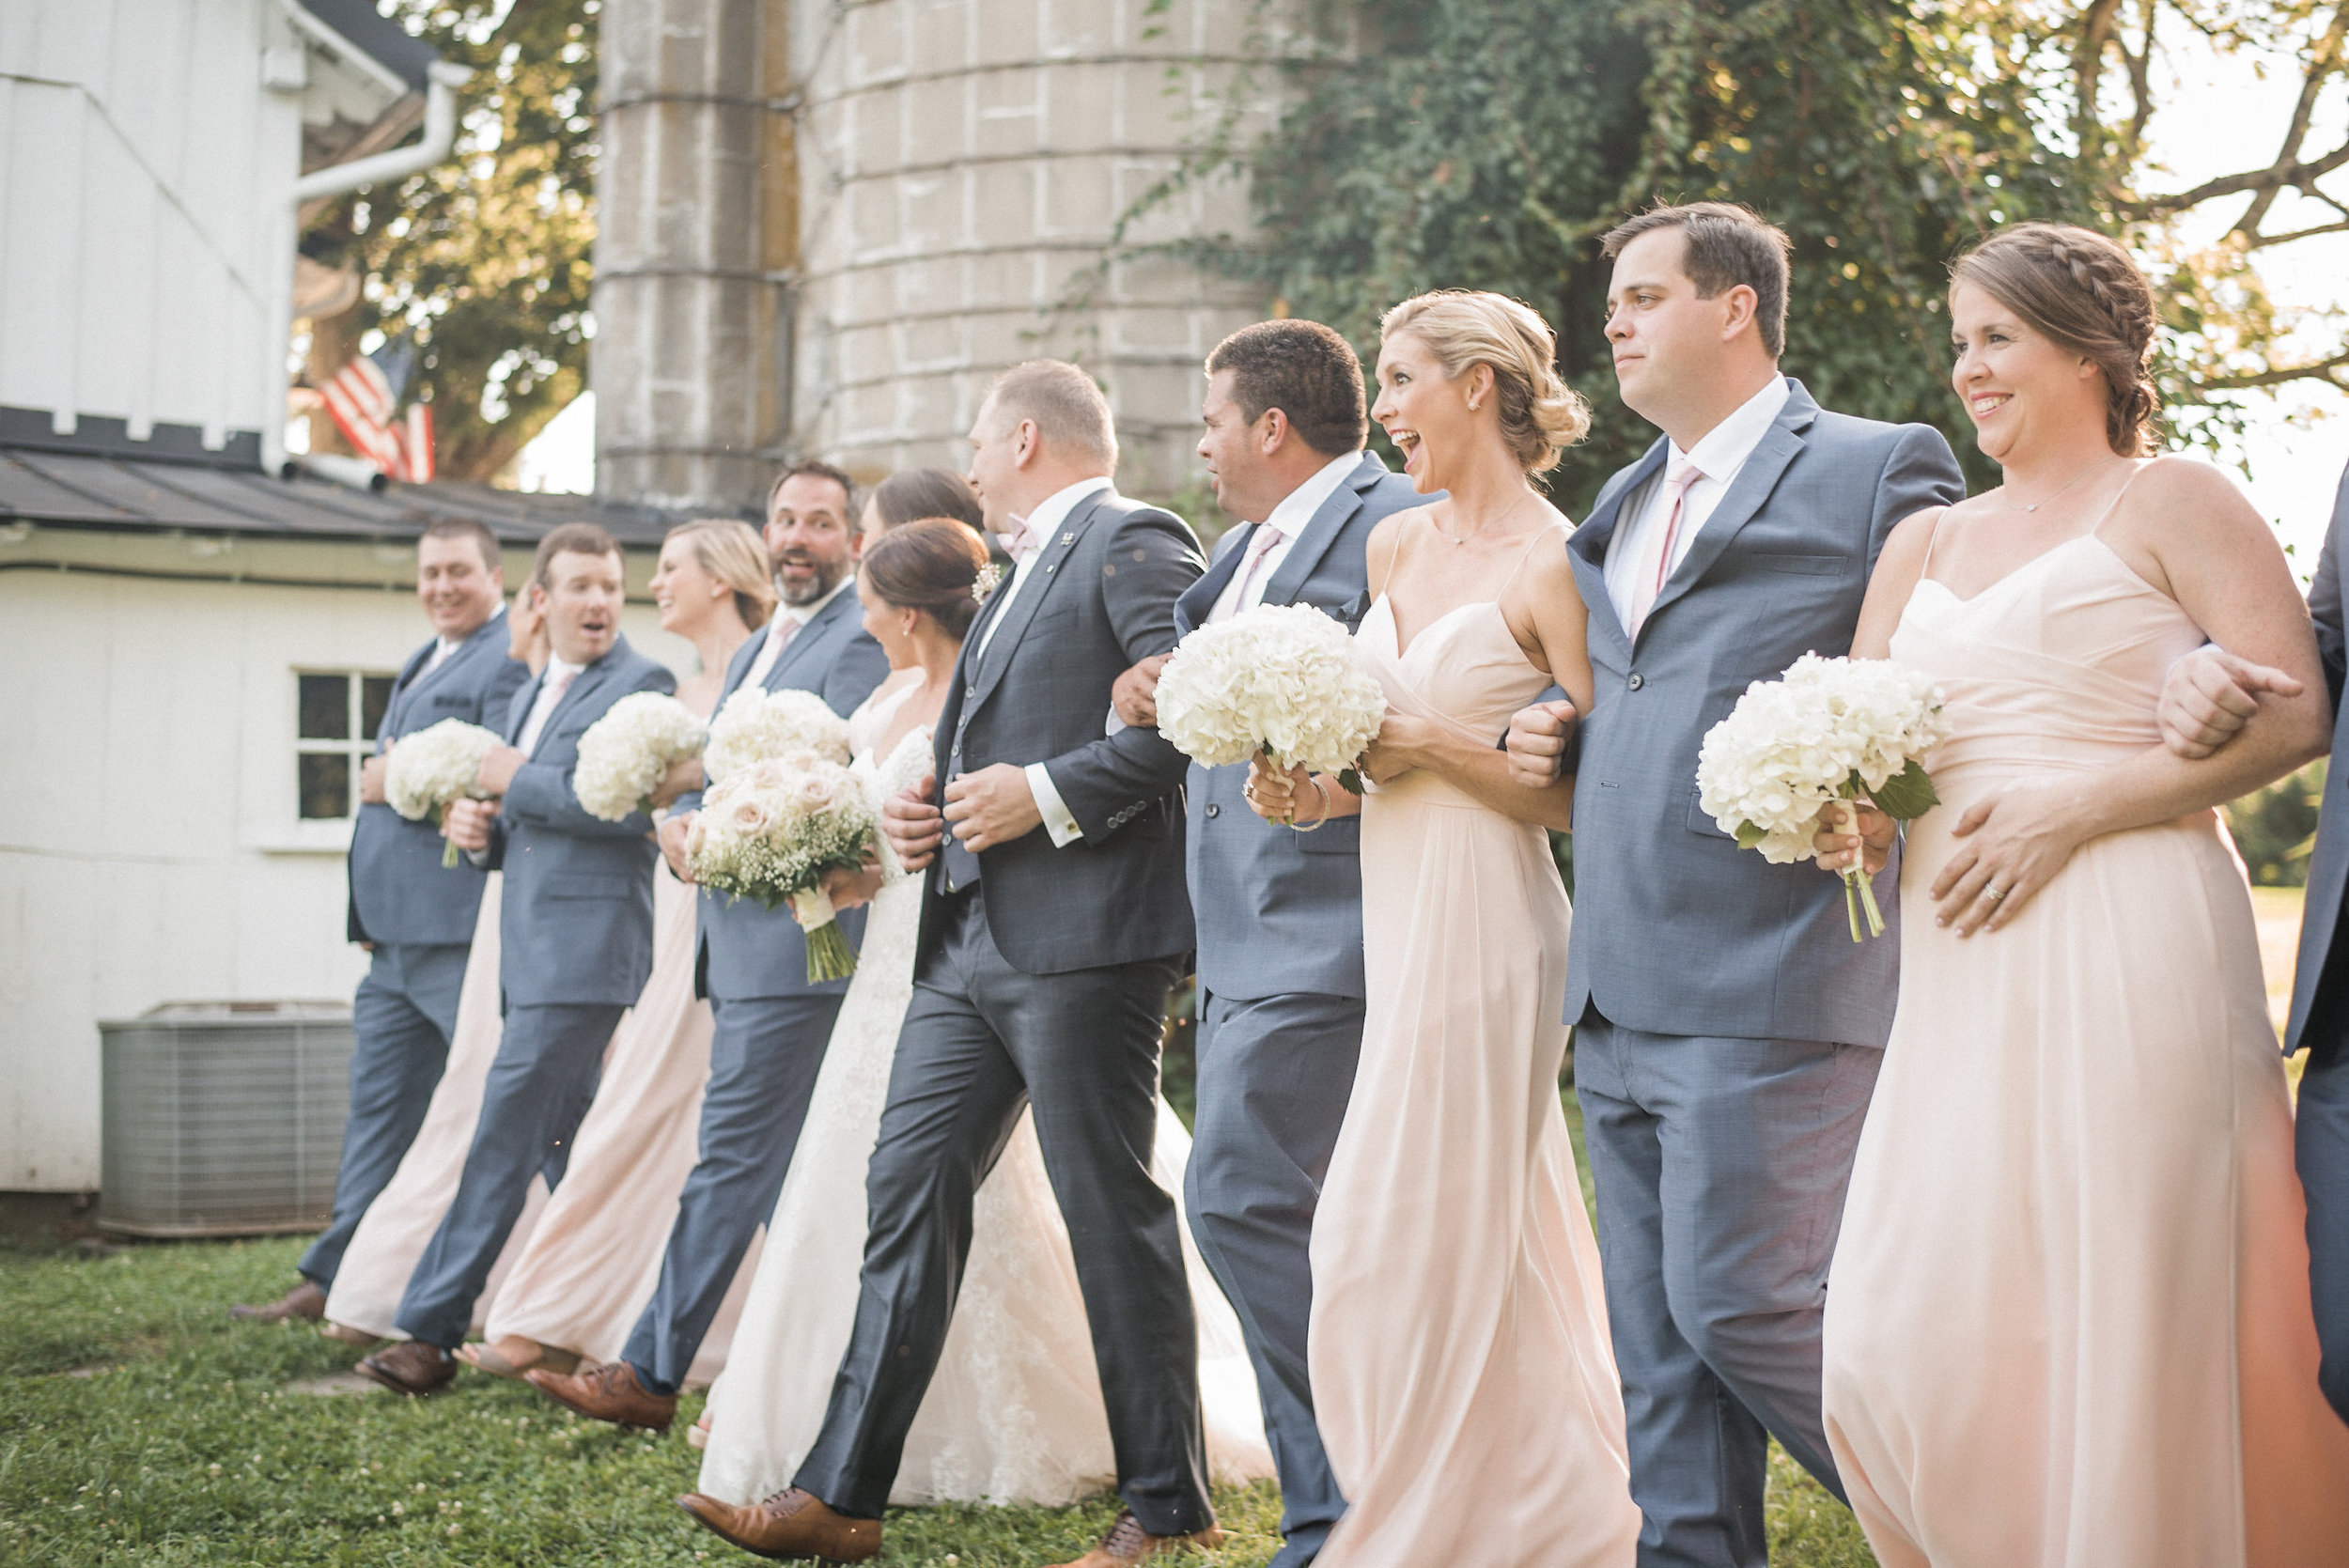 Bridal party walking on lawn